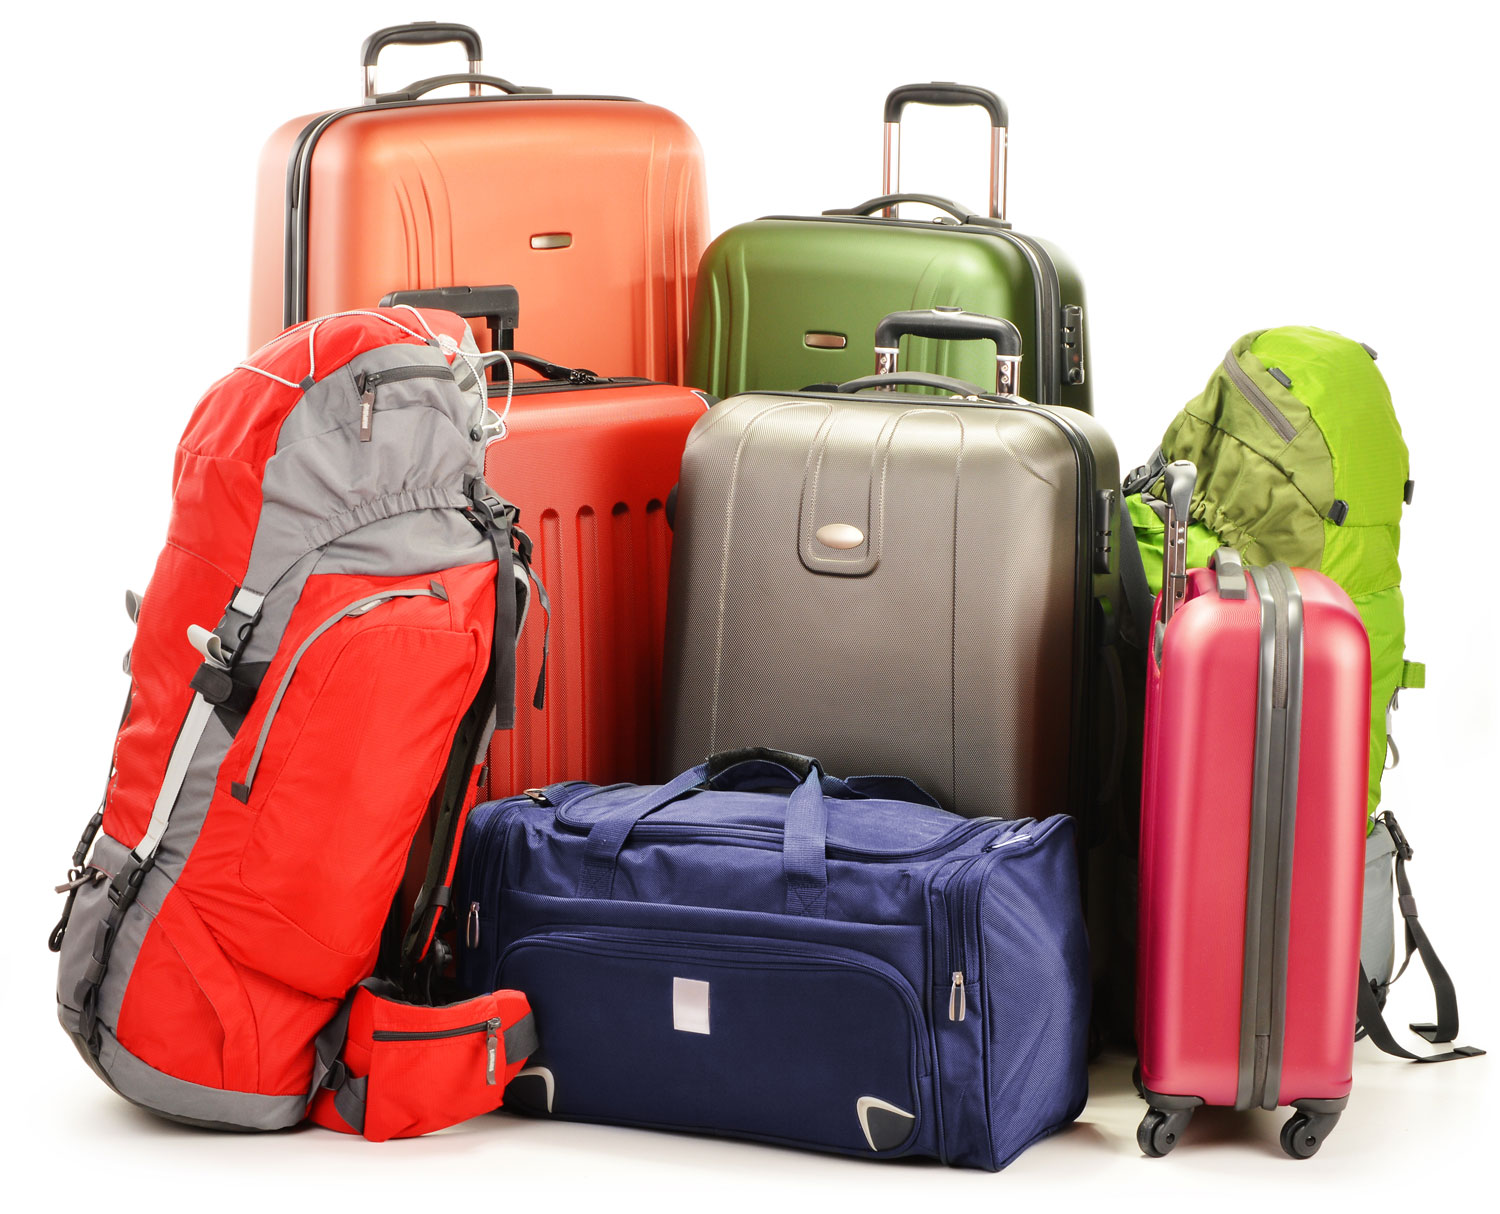 Which type will you choose as your main luggage?